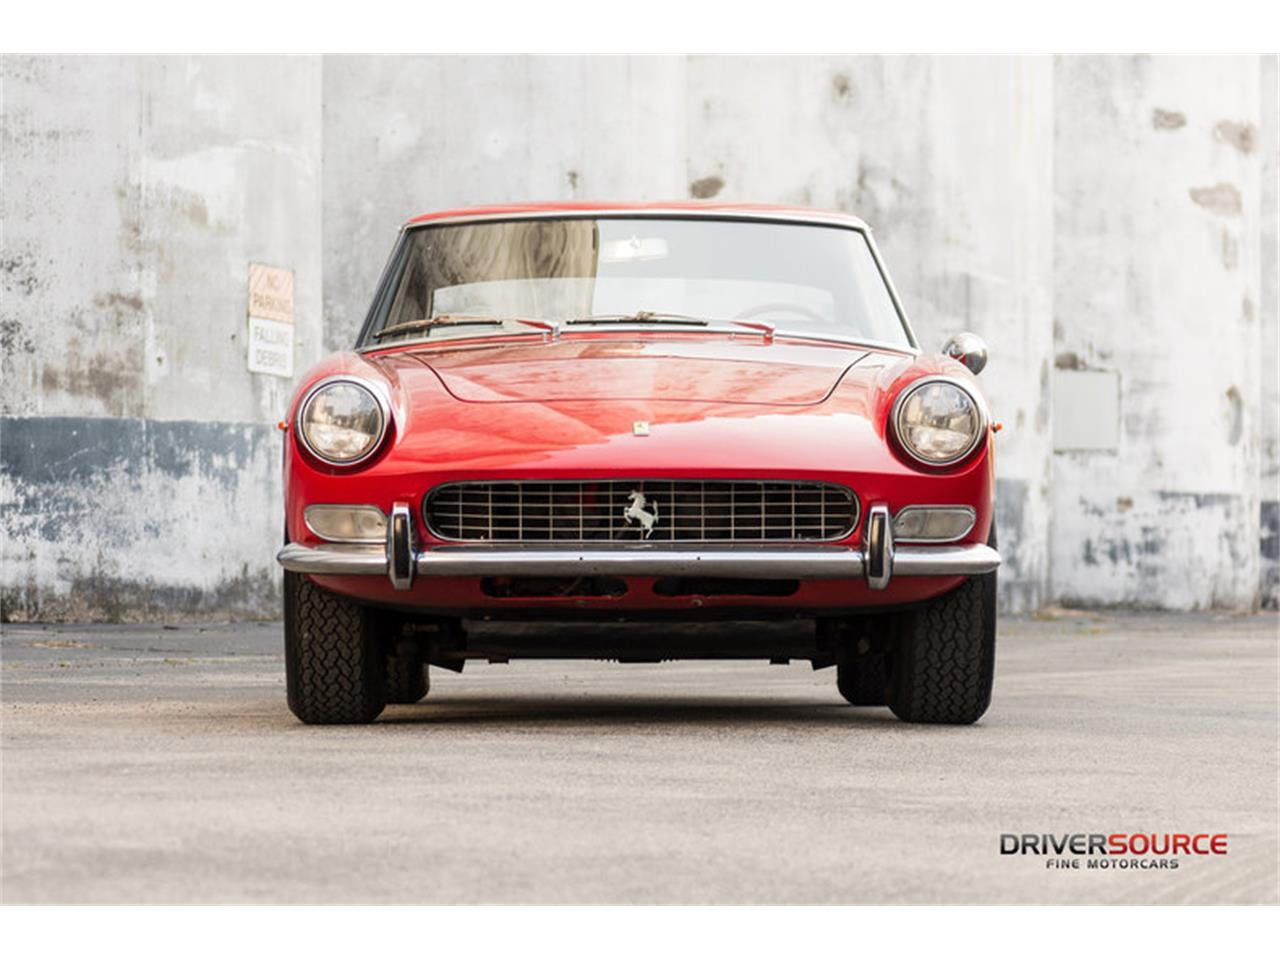 Large Picture of 1966 Ferrari 330 GT - $292,500.00 Offered by Driversource - MH2U